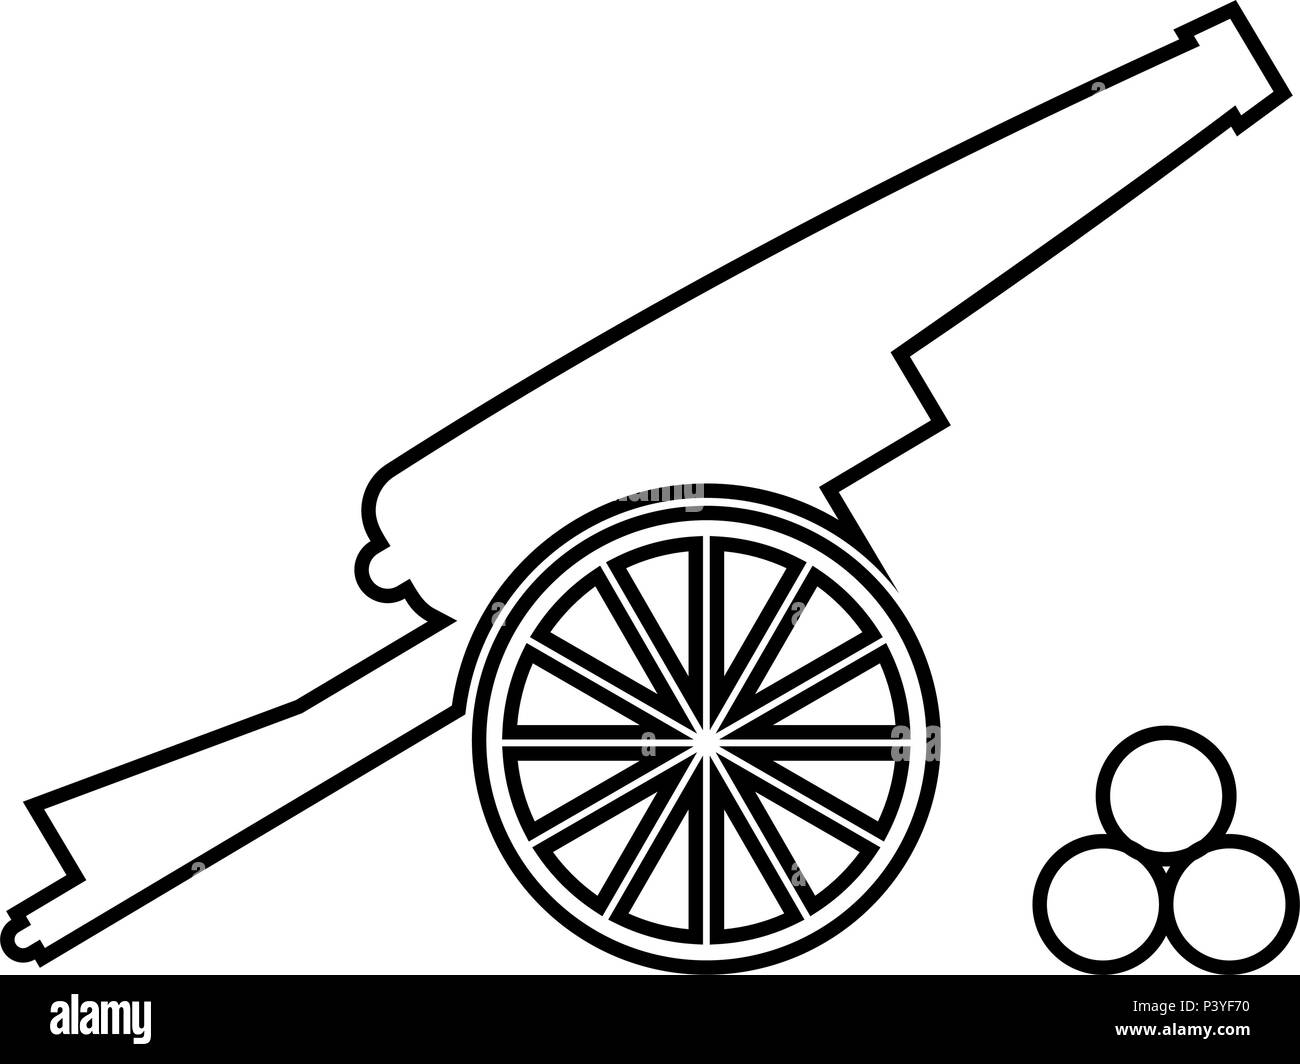 cannon fire stock vector images alamy 18th Century Wood medieval cannon firing cores icon black color vector illustration flat style simple image stock vector